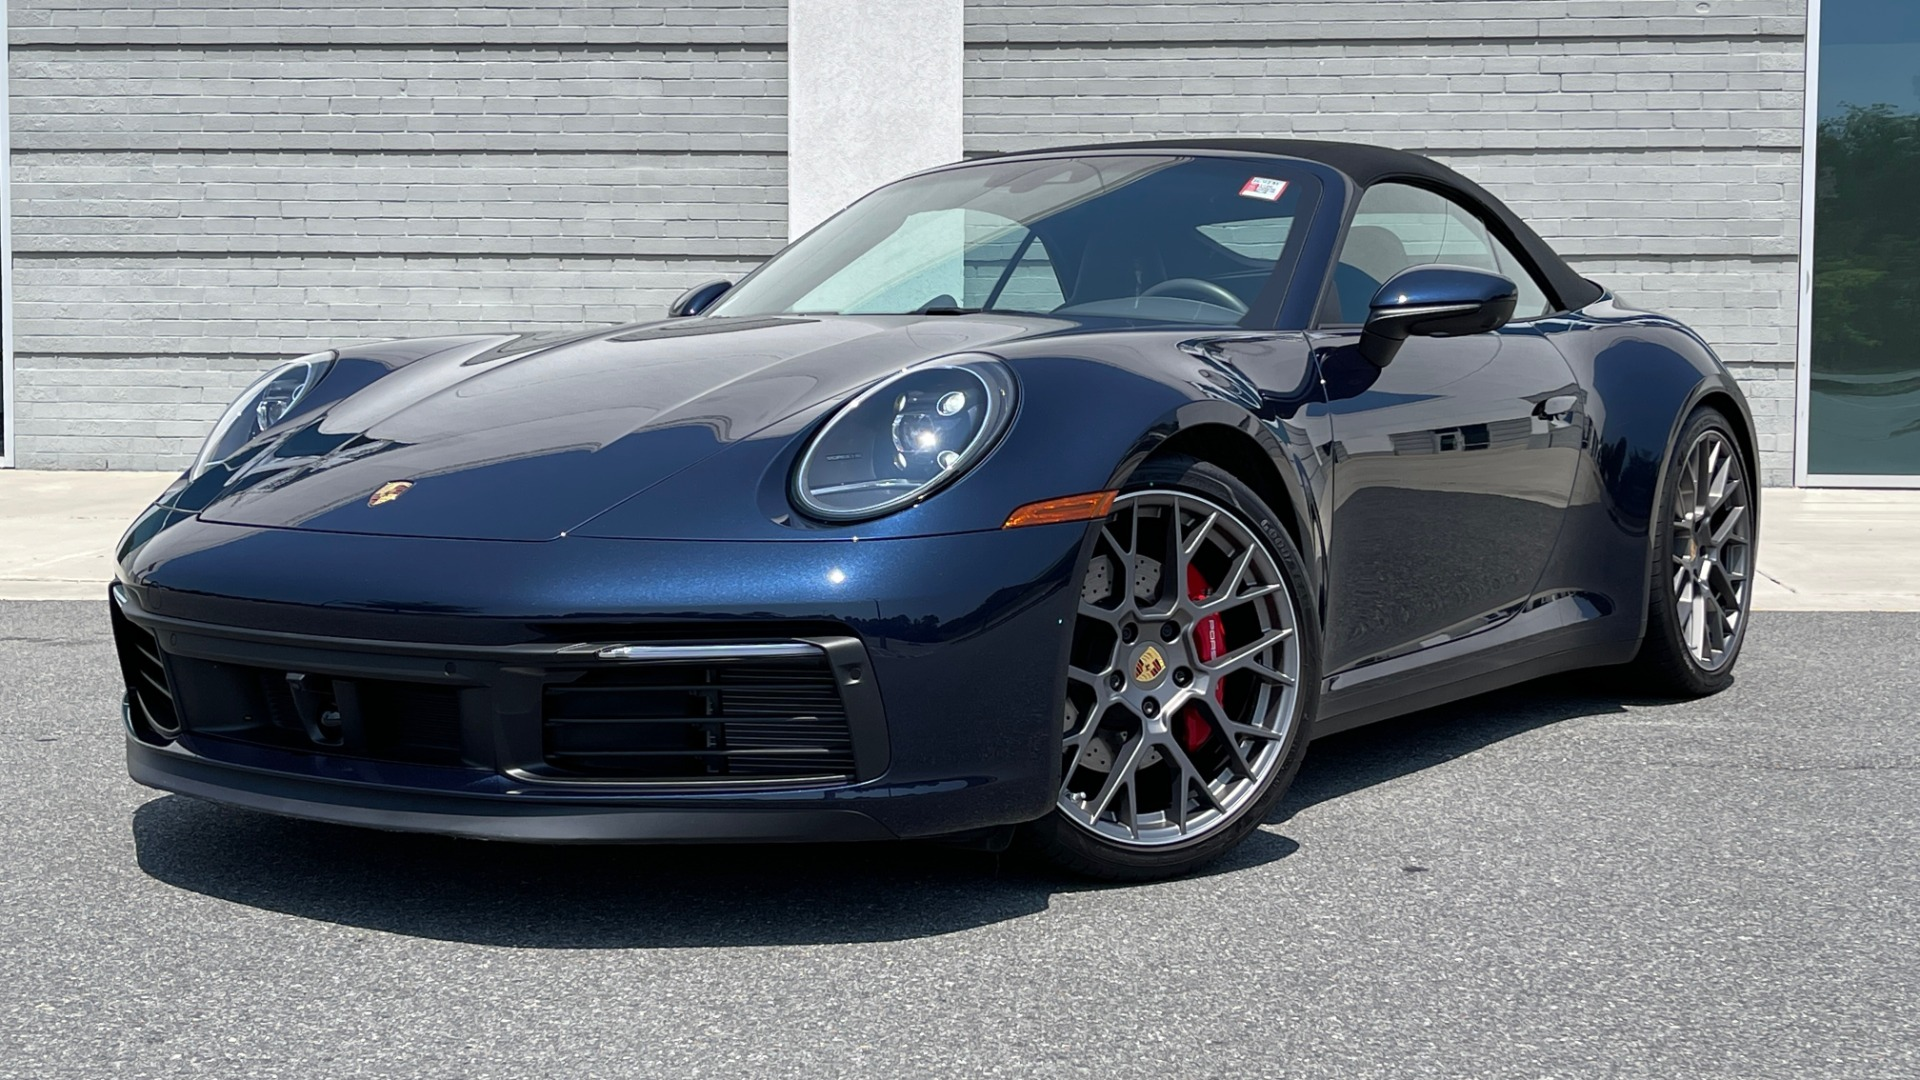 Used 2020 Porsche 911 CARRERA S CABRIOLET PREMIUM SPORT / LCA / ACC / BOSE / REARVIEW for sale $159,995 at Formula Imports in Charlotte NC 28227 1